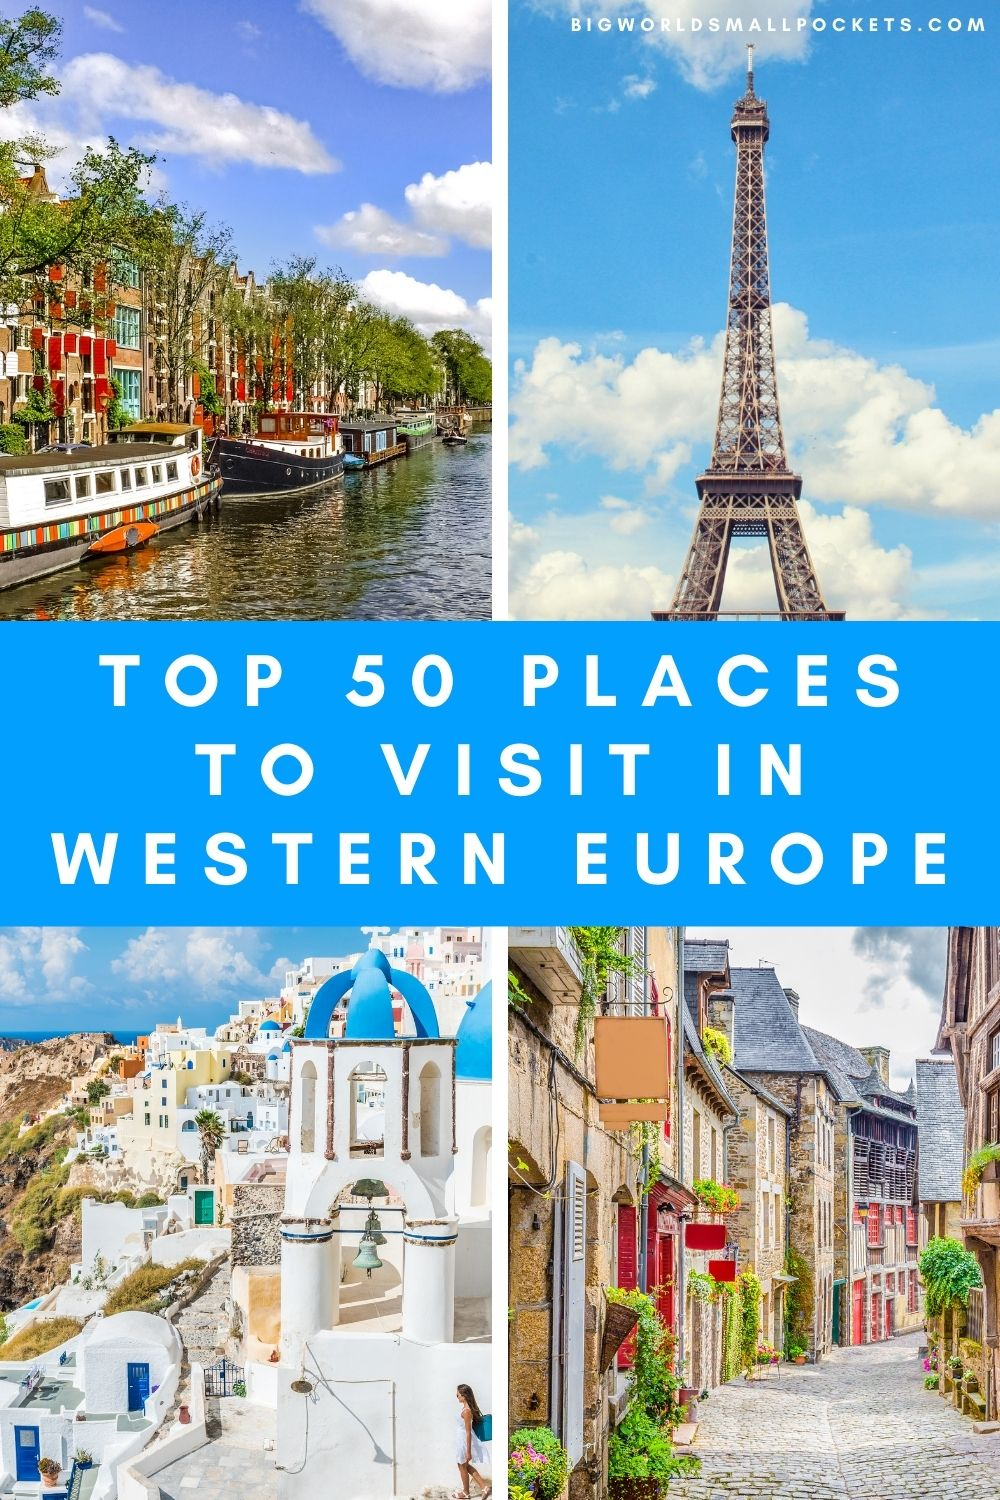 Best 50 Places to Visit in Western Europe